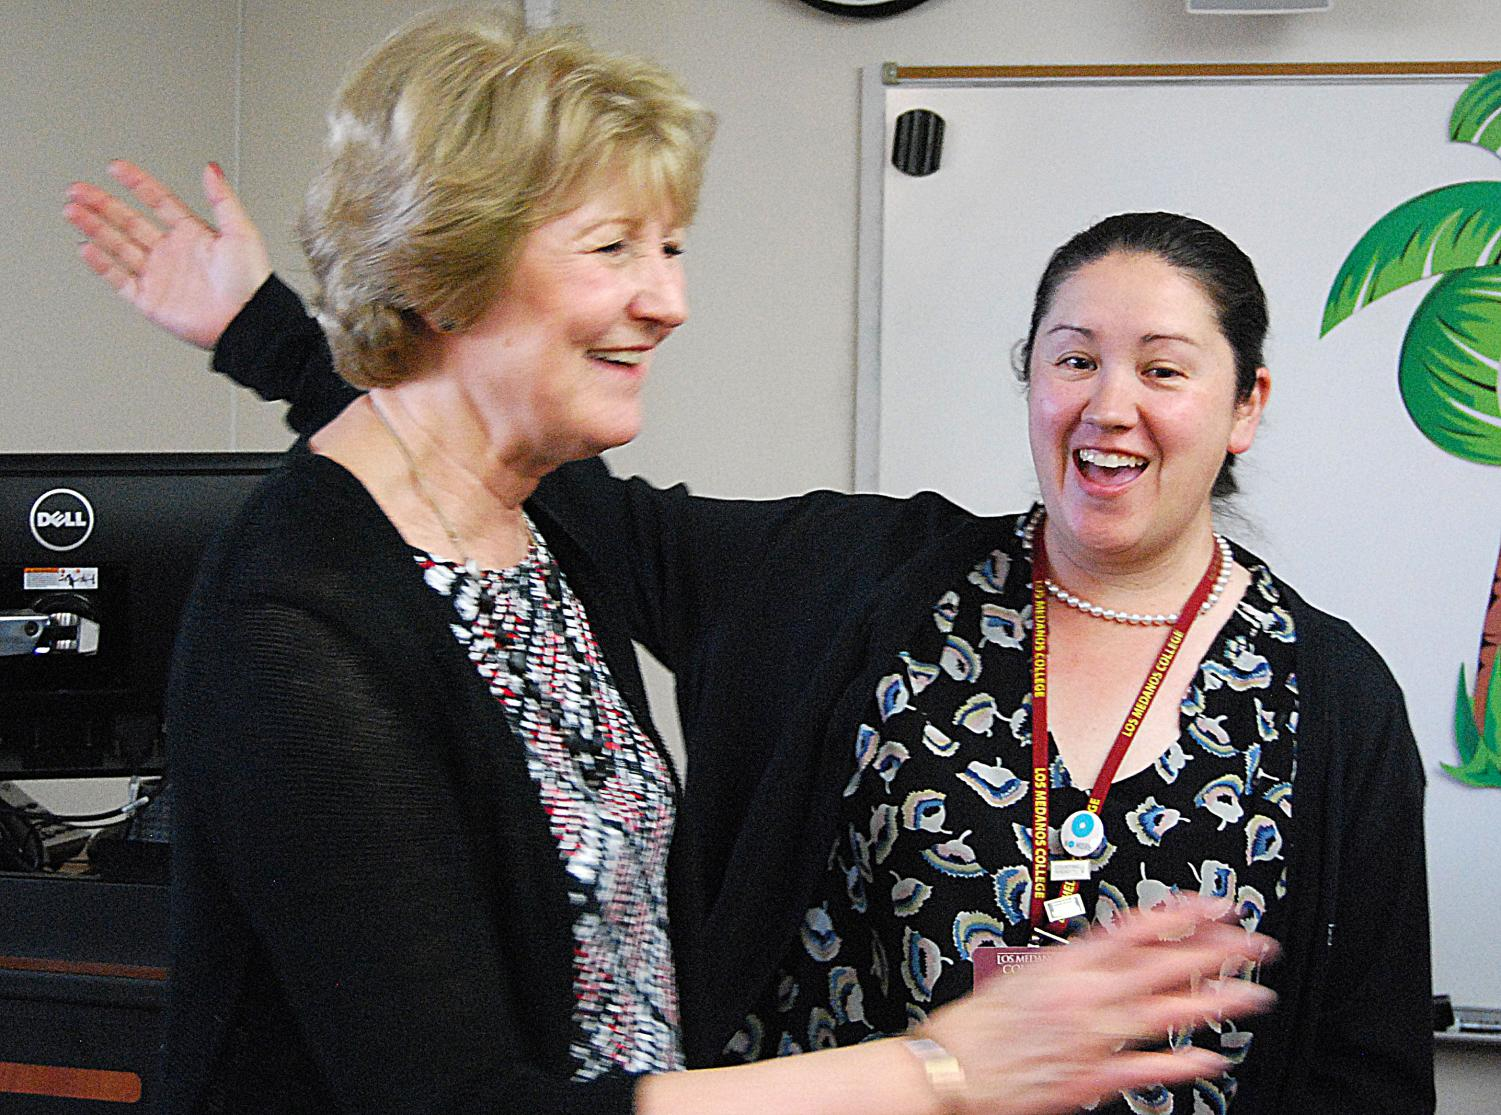 Financial aid assistant Deborah Baskin goes in to hug Gail Newman at the vp's retirement party.